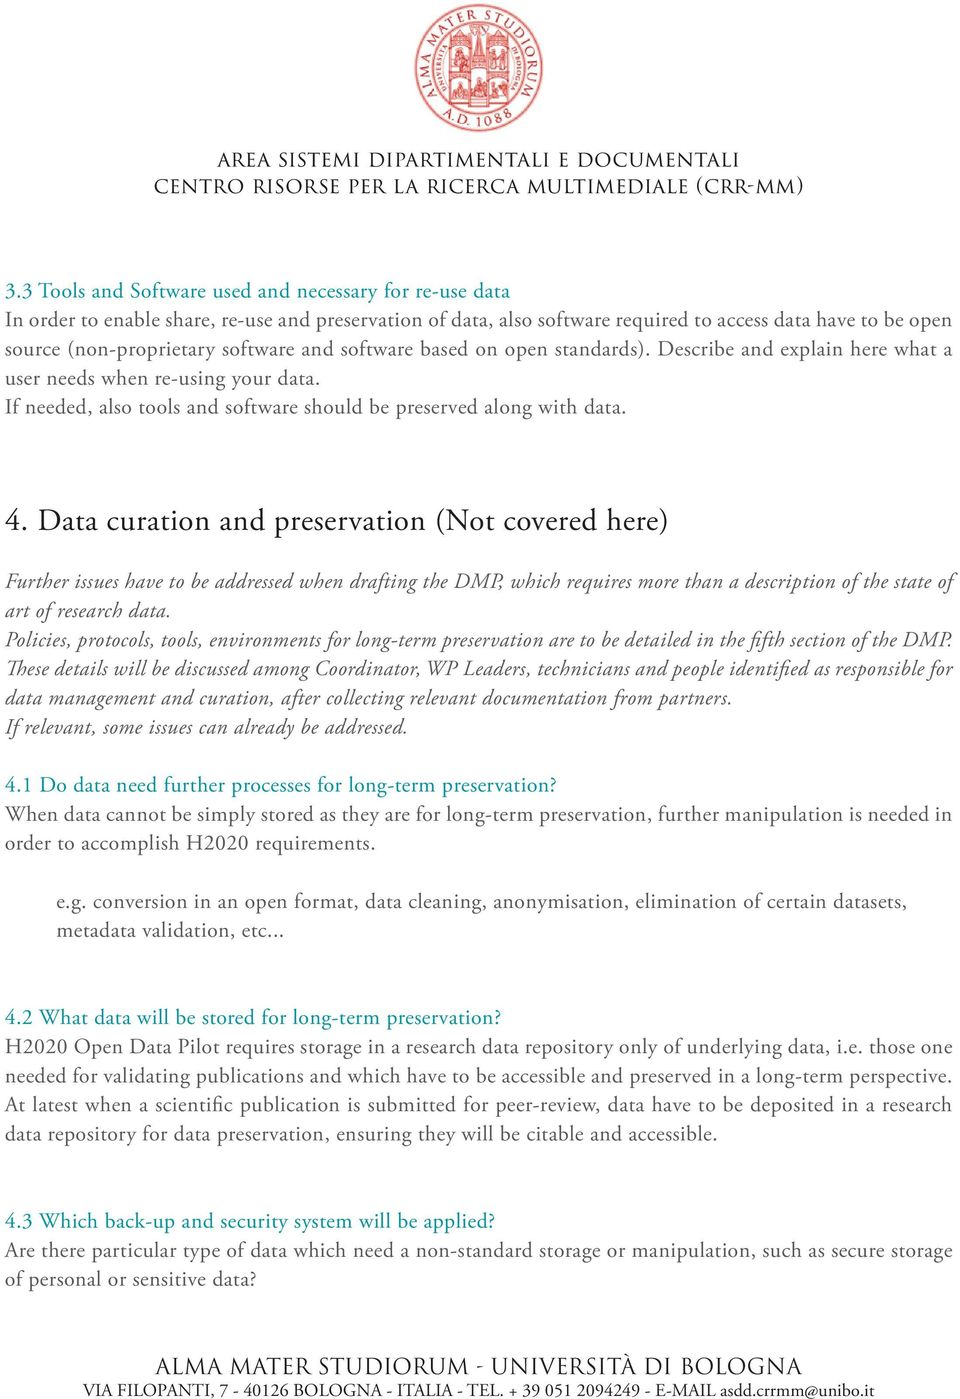 Data curation and preservation (Not covered here) Further issues have to be addressed when drafting the DMP, which requires more than a description of the state of art of research data.